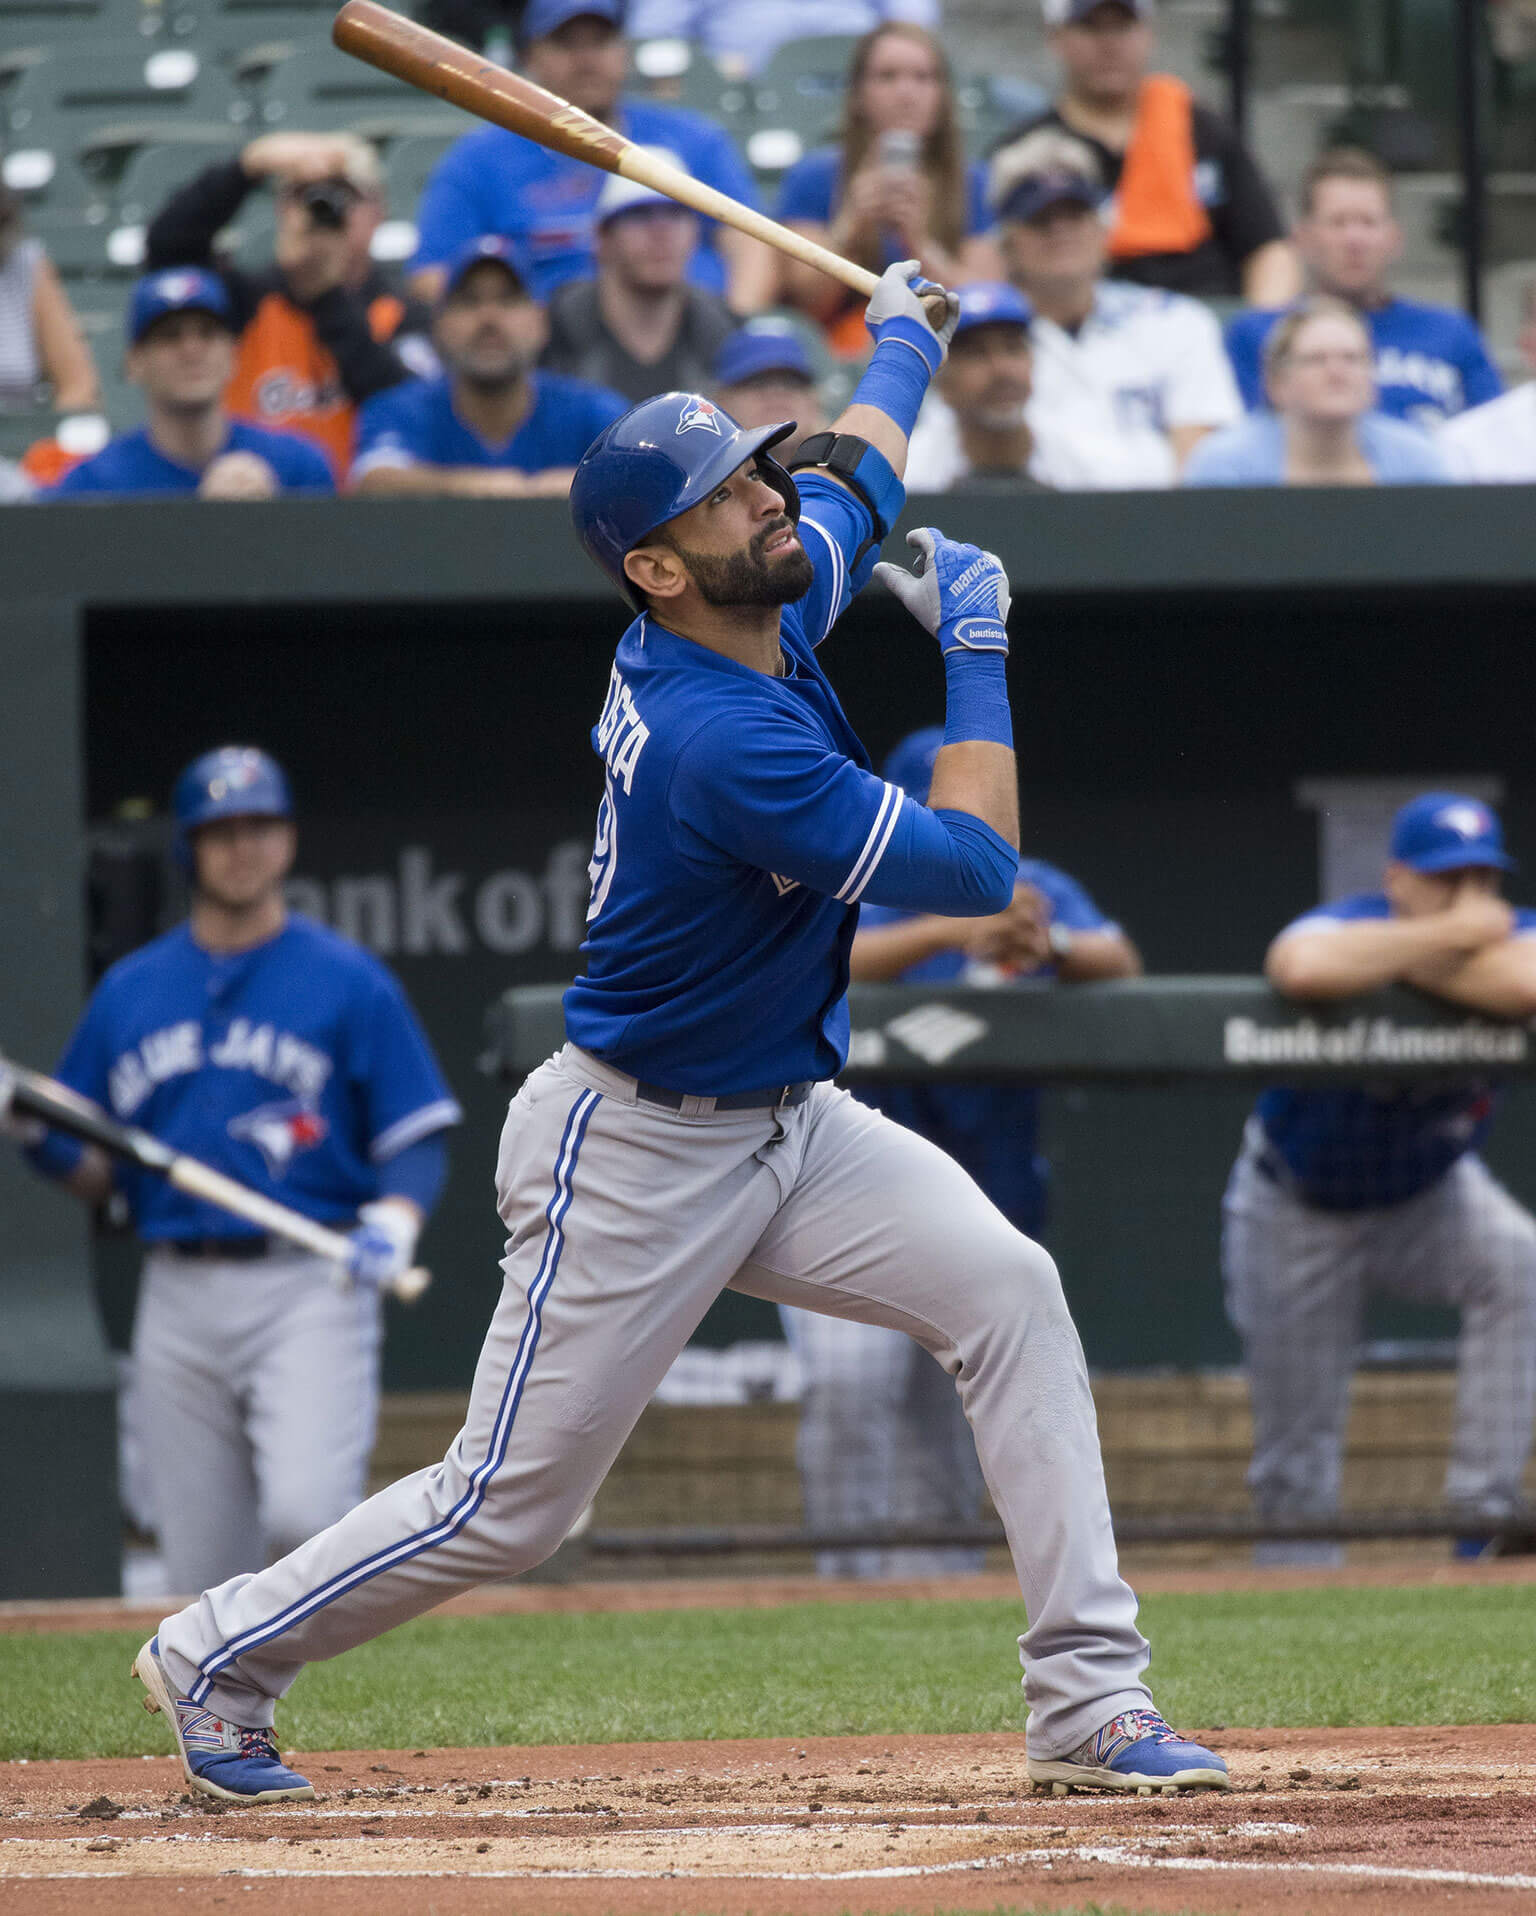 Photograph of José Bautista by Keith Allison / CC BY-SA 2.0